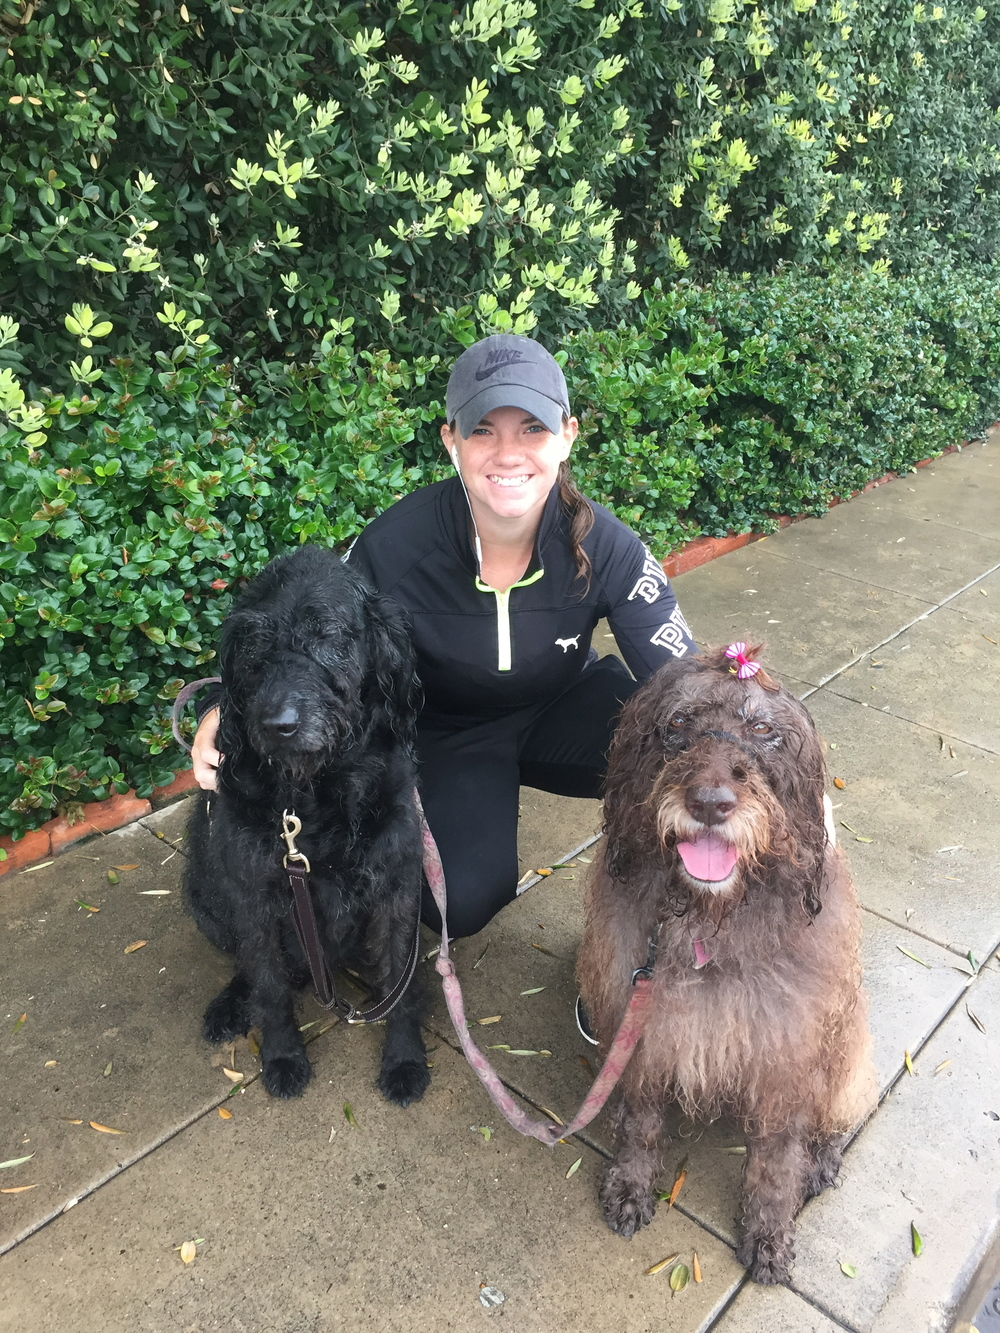 DogZenergy team member Jamie is all smiles along with Teddy and Dotty!